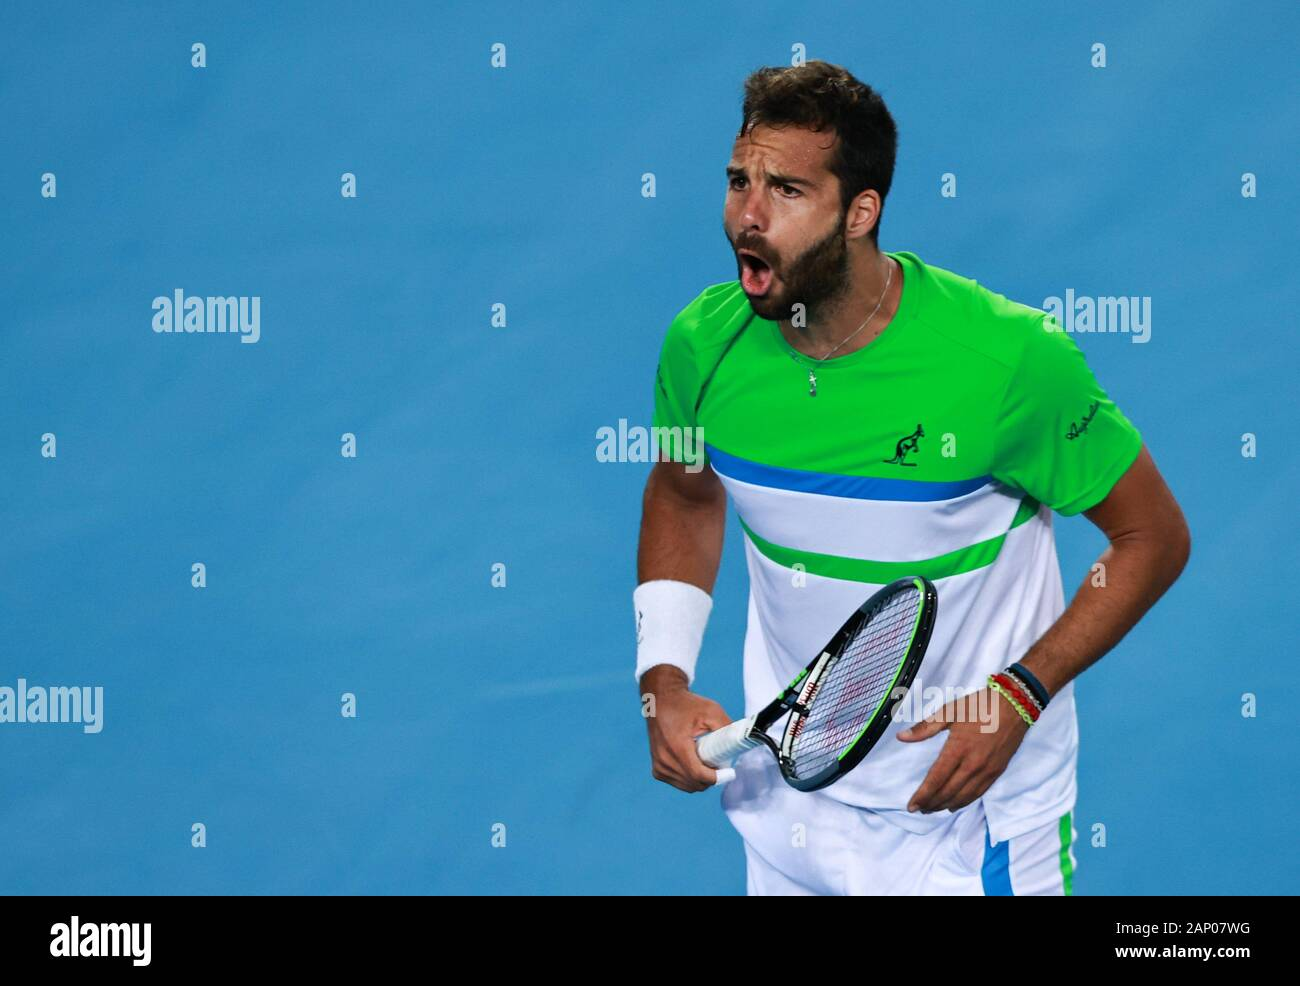 Melbourne, Australia. 20th Jan, 2020. Salvatore Caruso of Italy reacts  during the men's singles first round